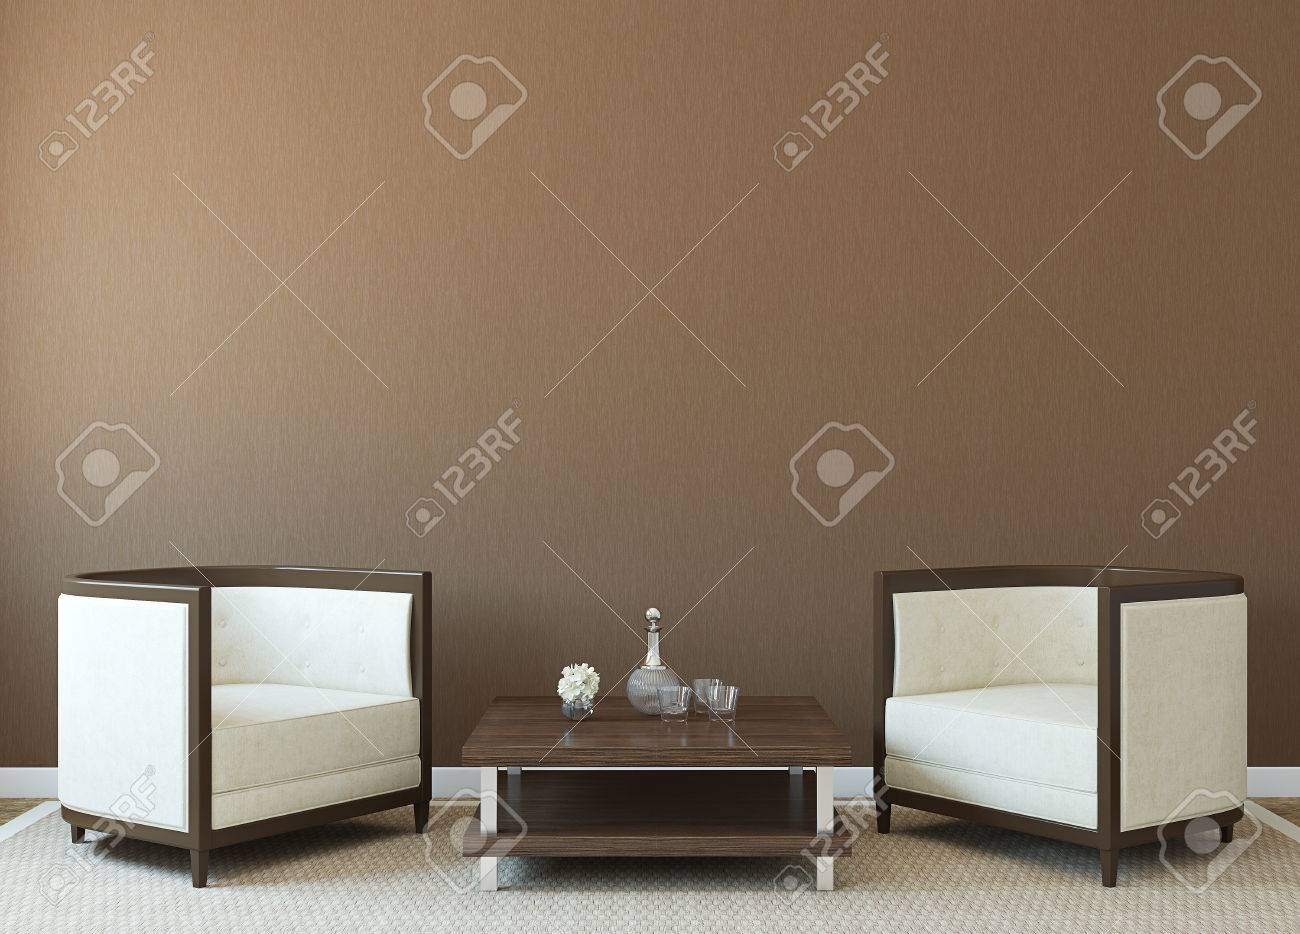 Modern interior with two armchairs near empty brown wall. 3d render. - 46522678